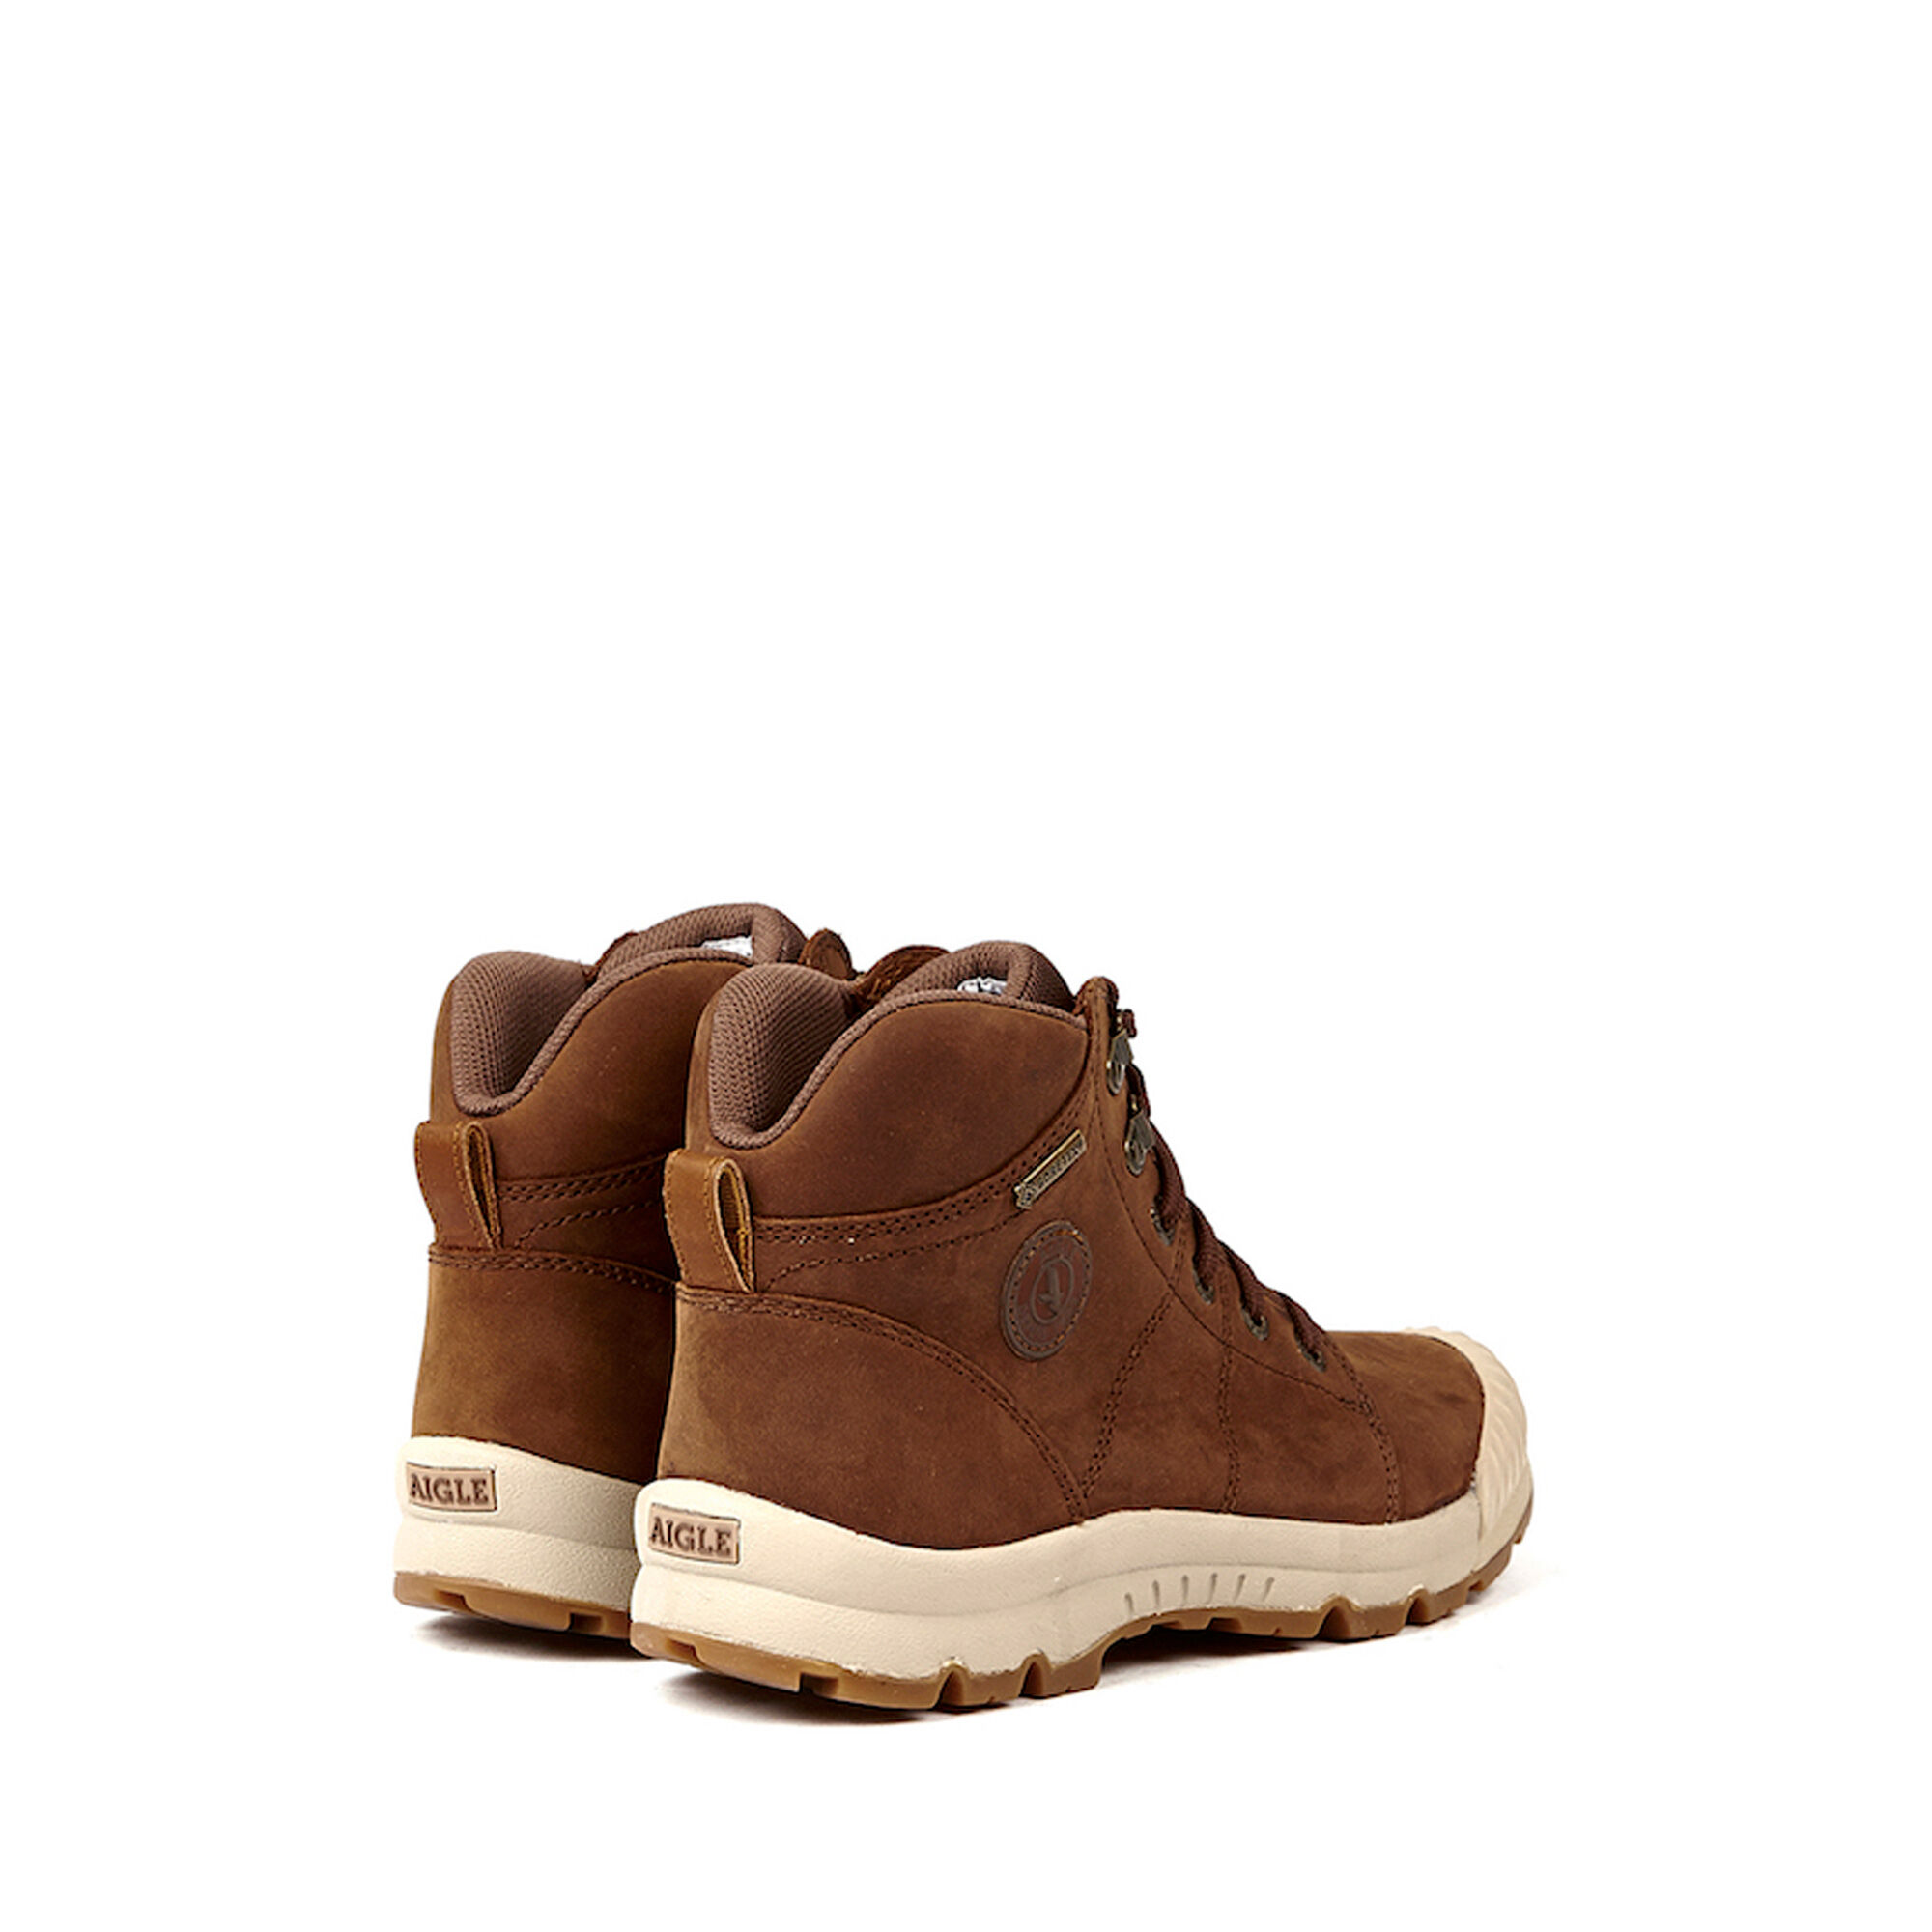 Marche Tether Tex® Aigle 4feqw Gore Femme Chaussures For De CBCZPqwgA